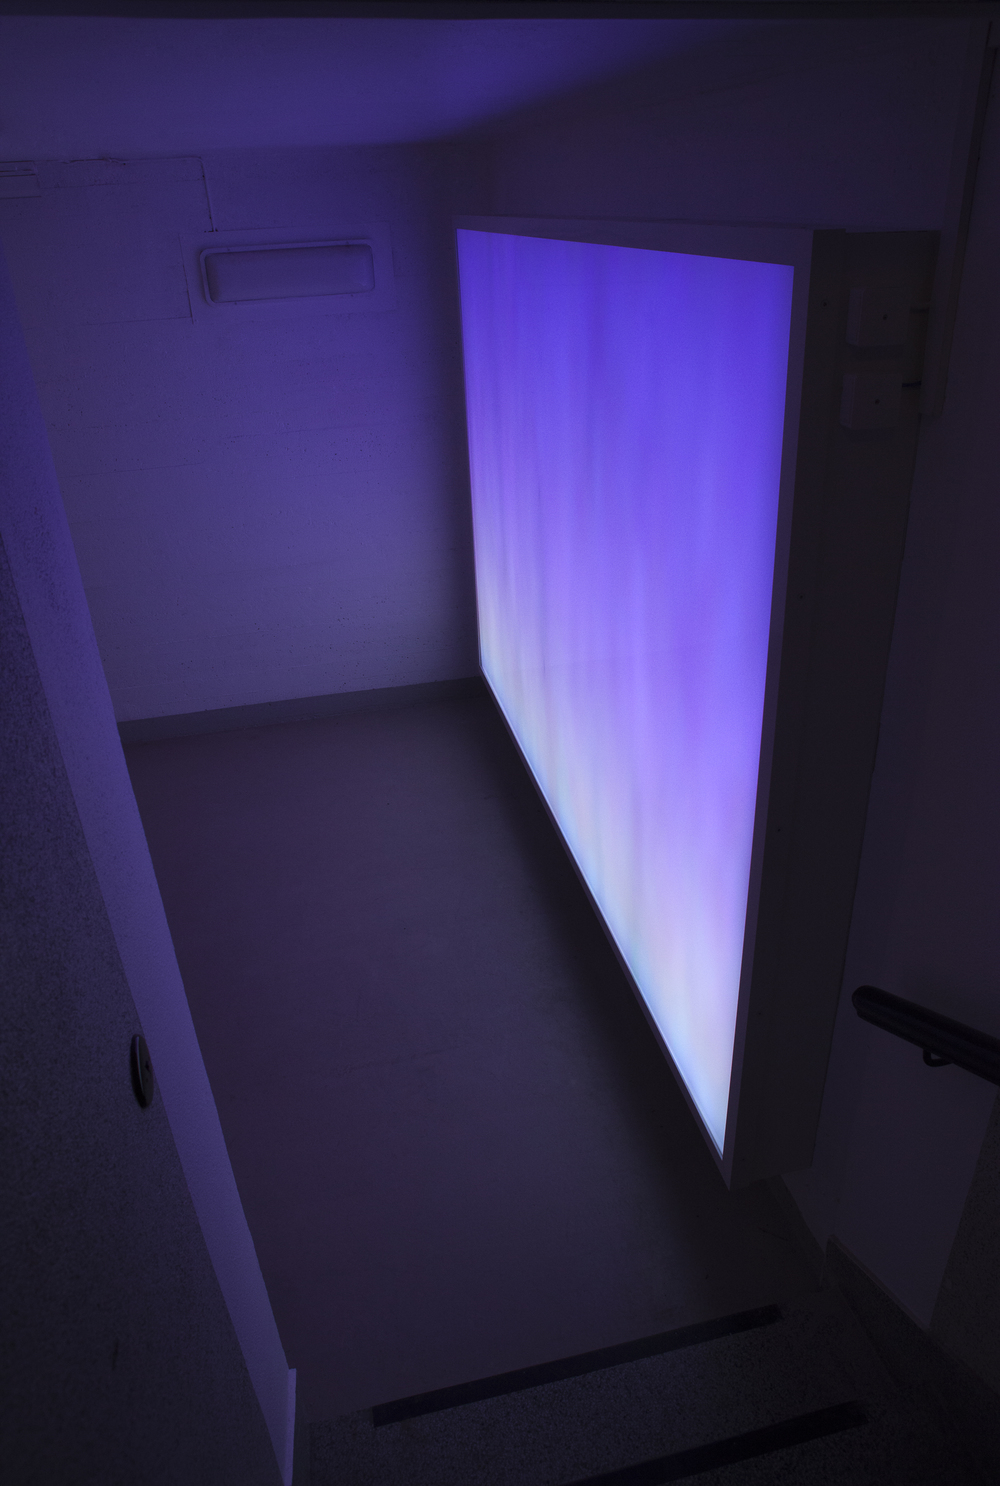 Horizon . Ila Prison, 2011. Light mode: Sunday morning. Programmed light box with LED screen, aluminum case with acrylic and Lexan fronts, 200 x 300 x 30 cm.